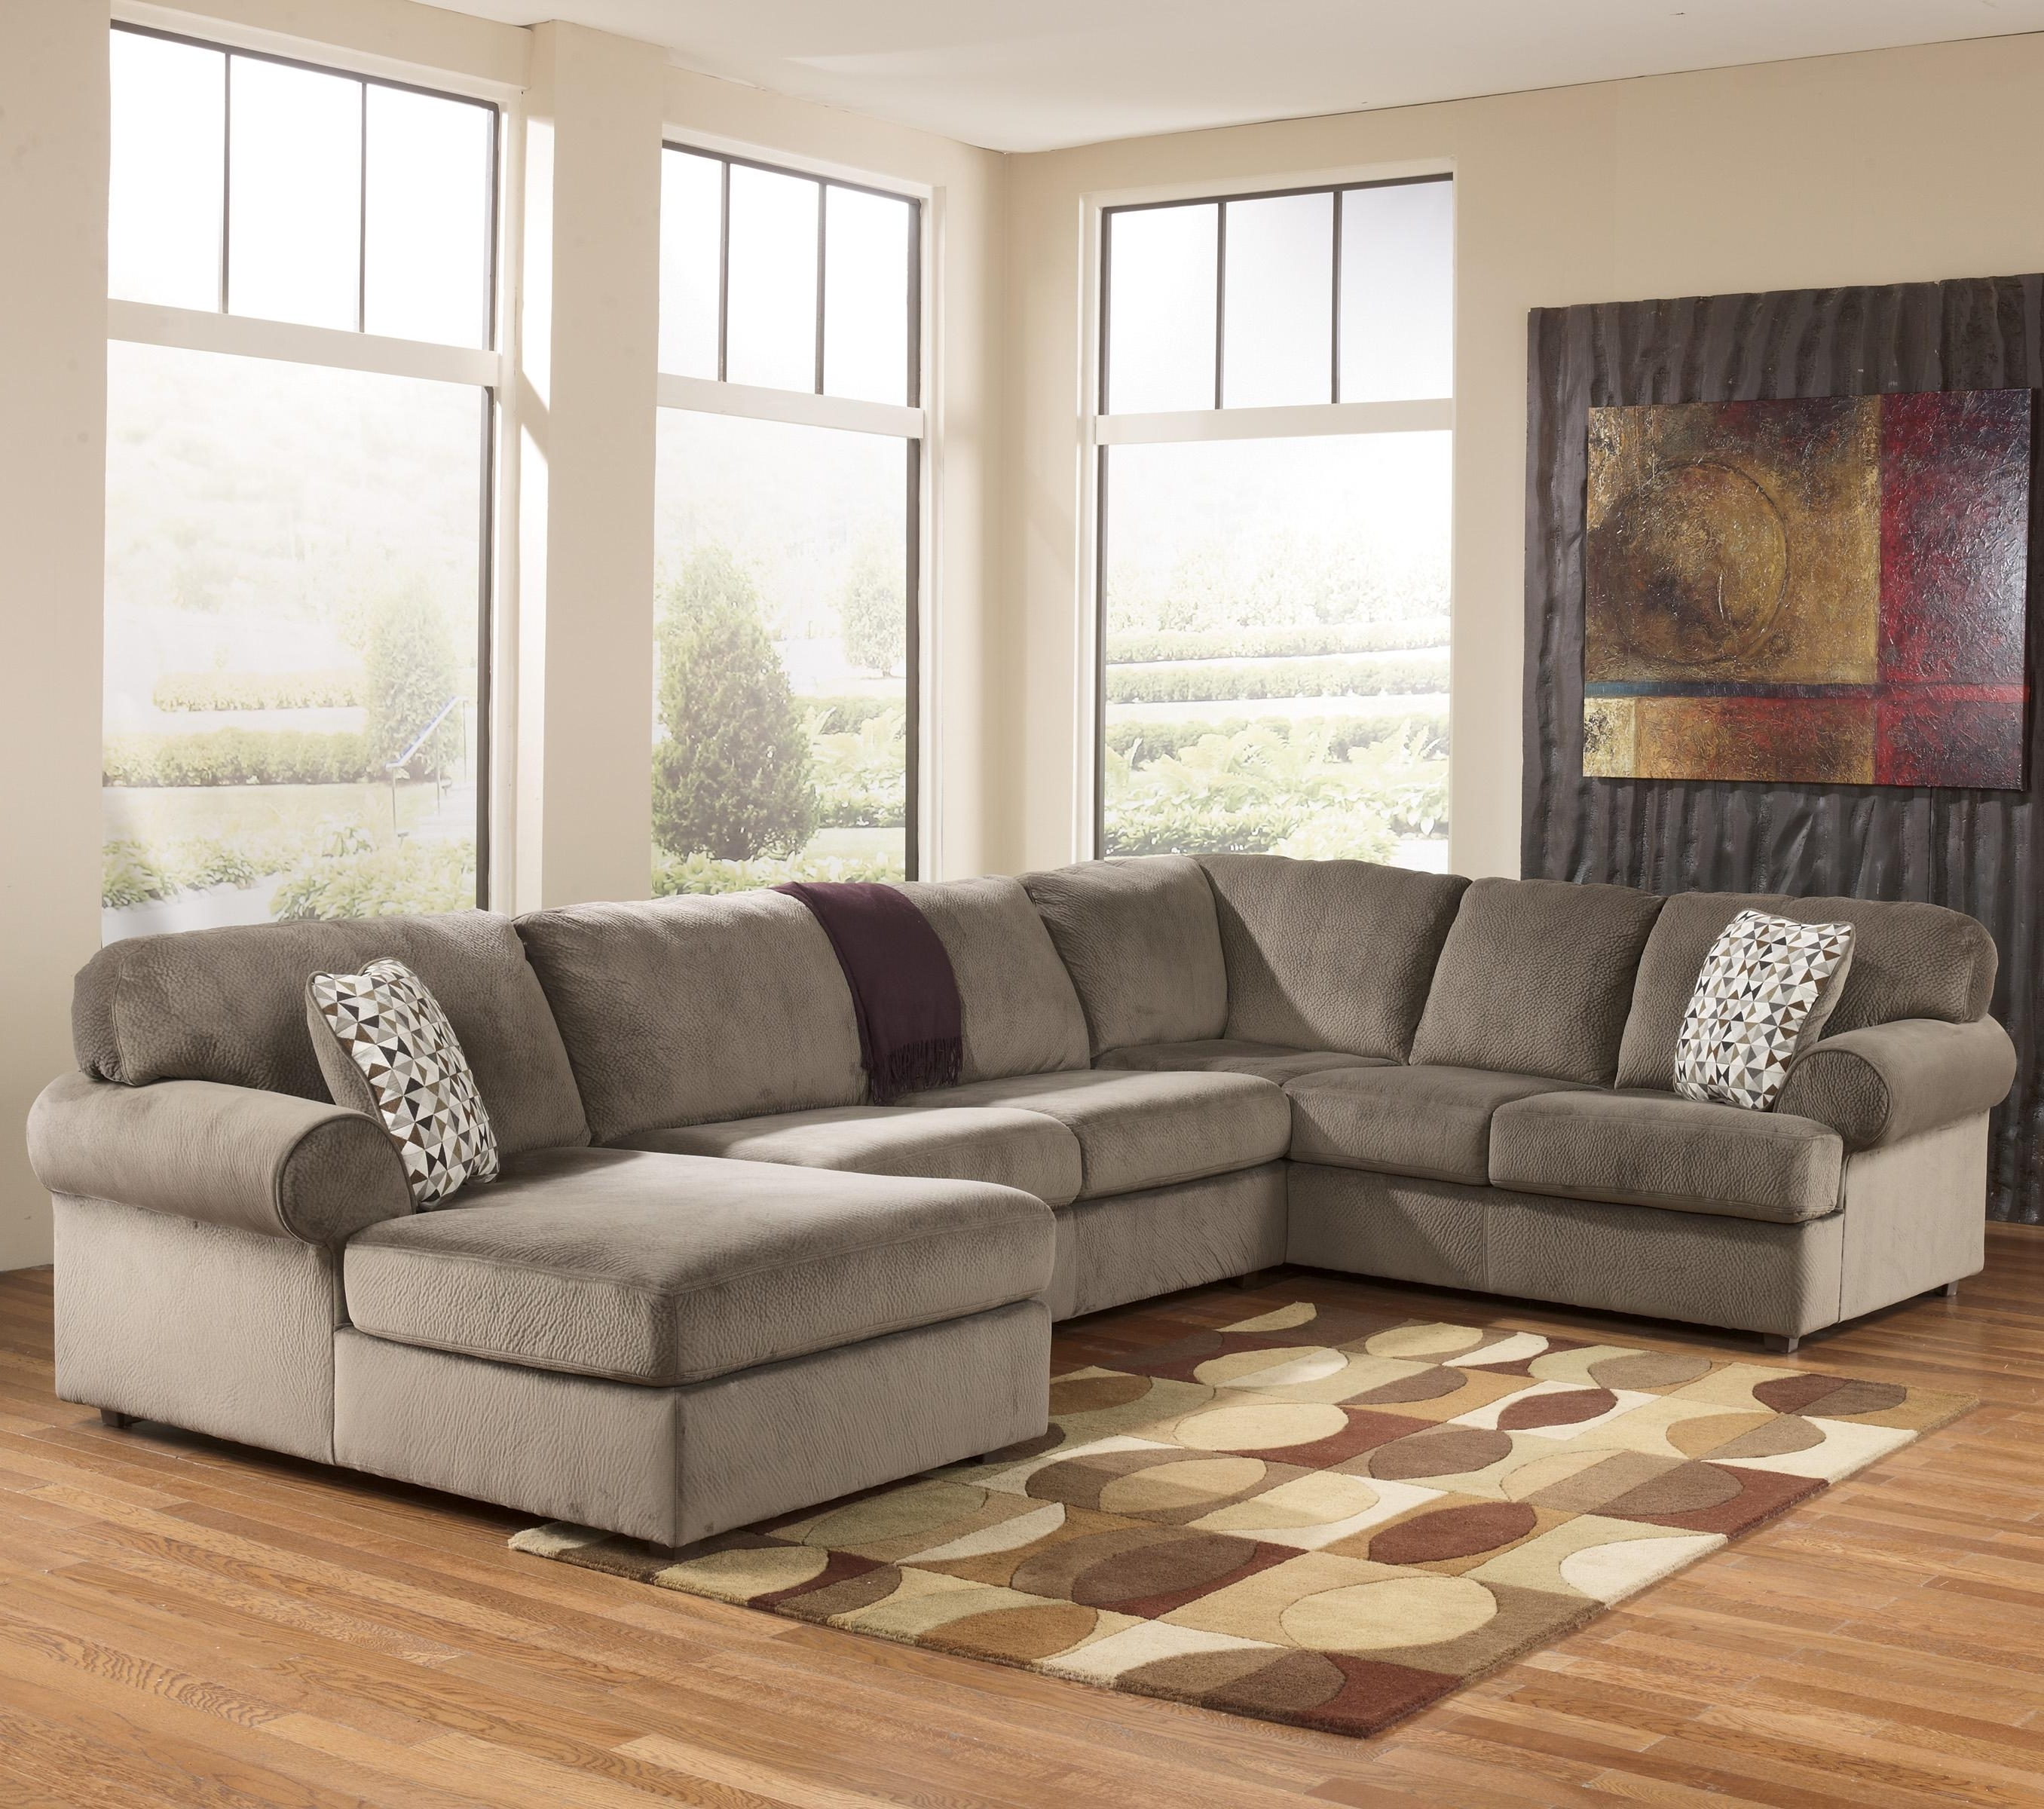 Trendy Signature Designashley Jessa Place – Dune Casual Sectional Inside Jacksonville Nc Sectional Sofas (View 12 of 15)